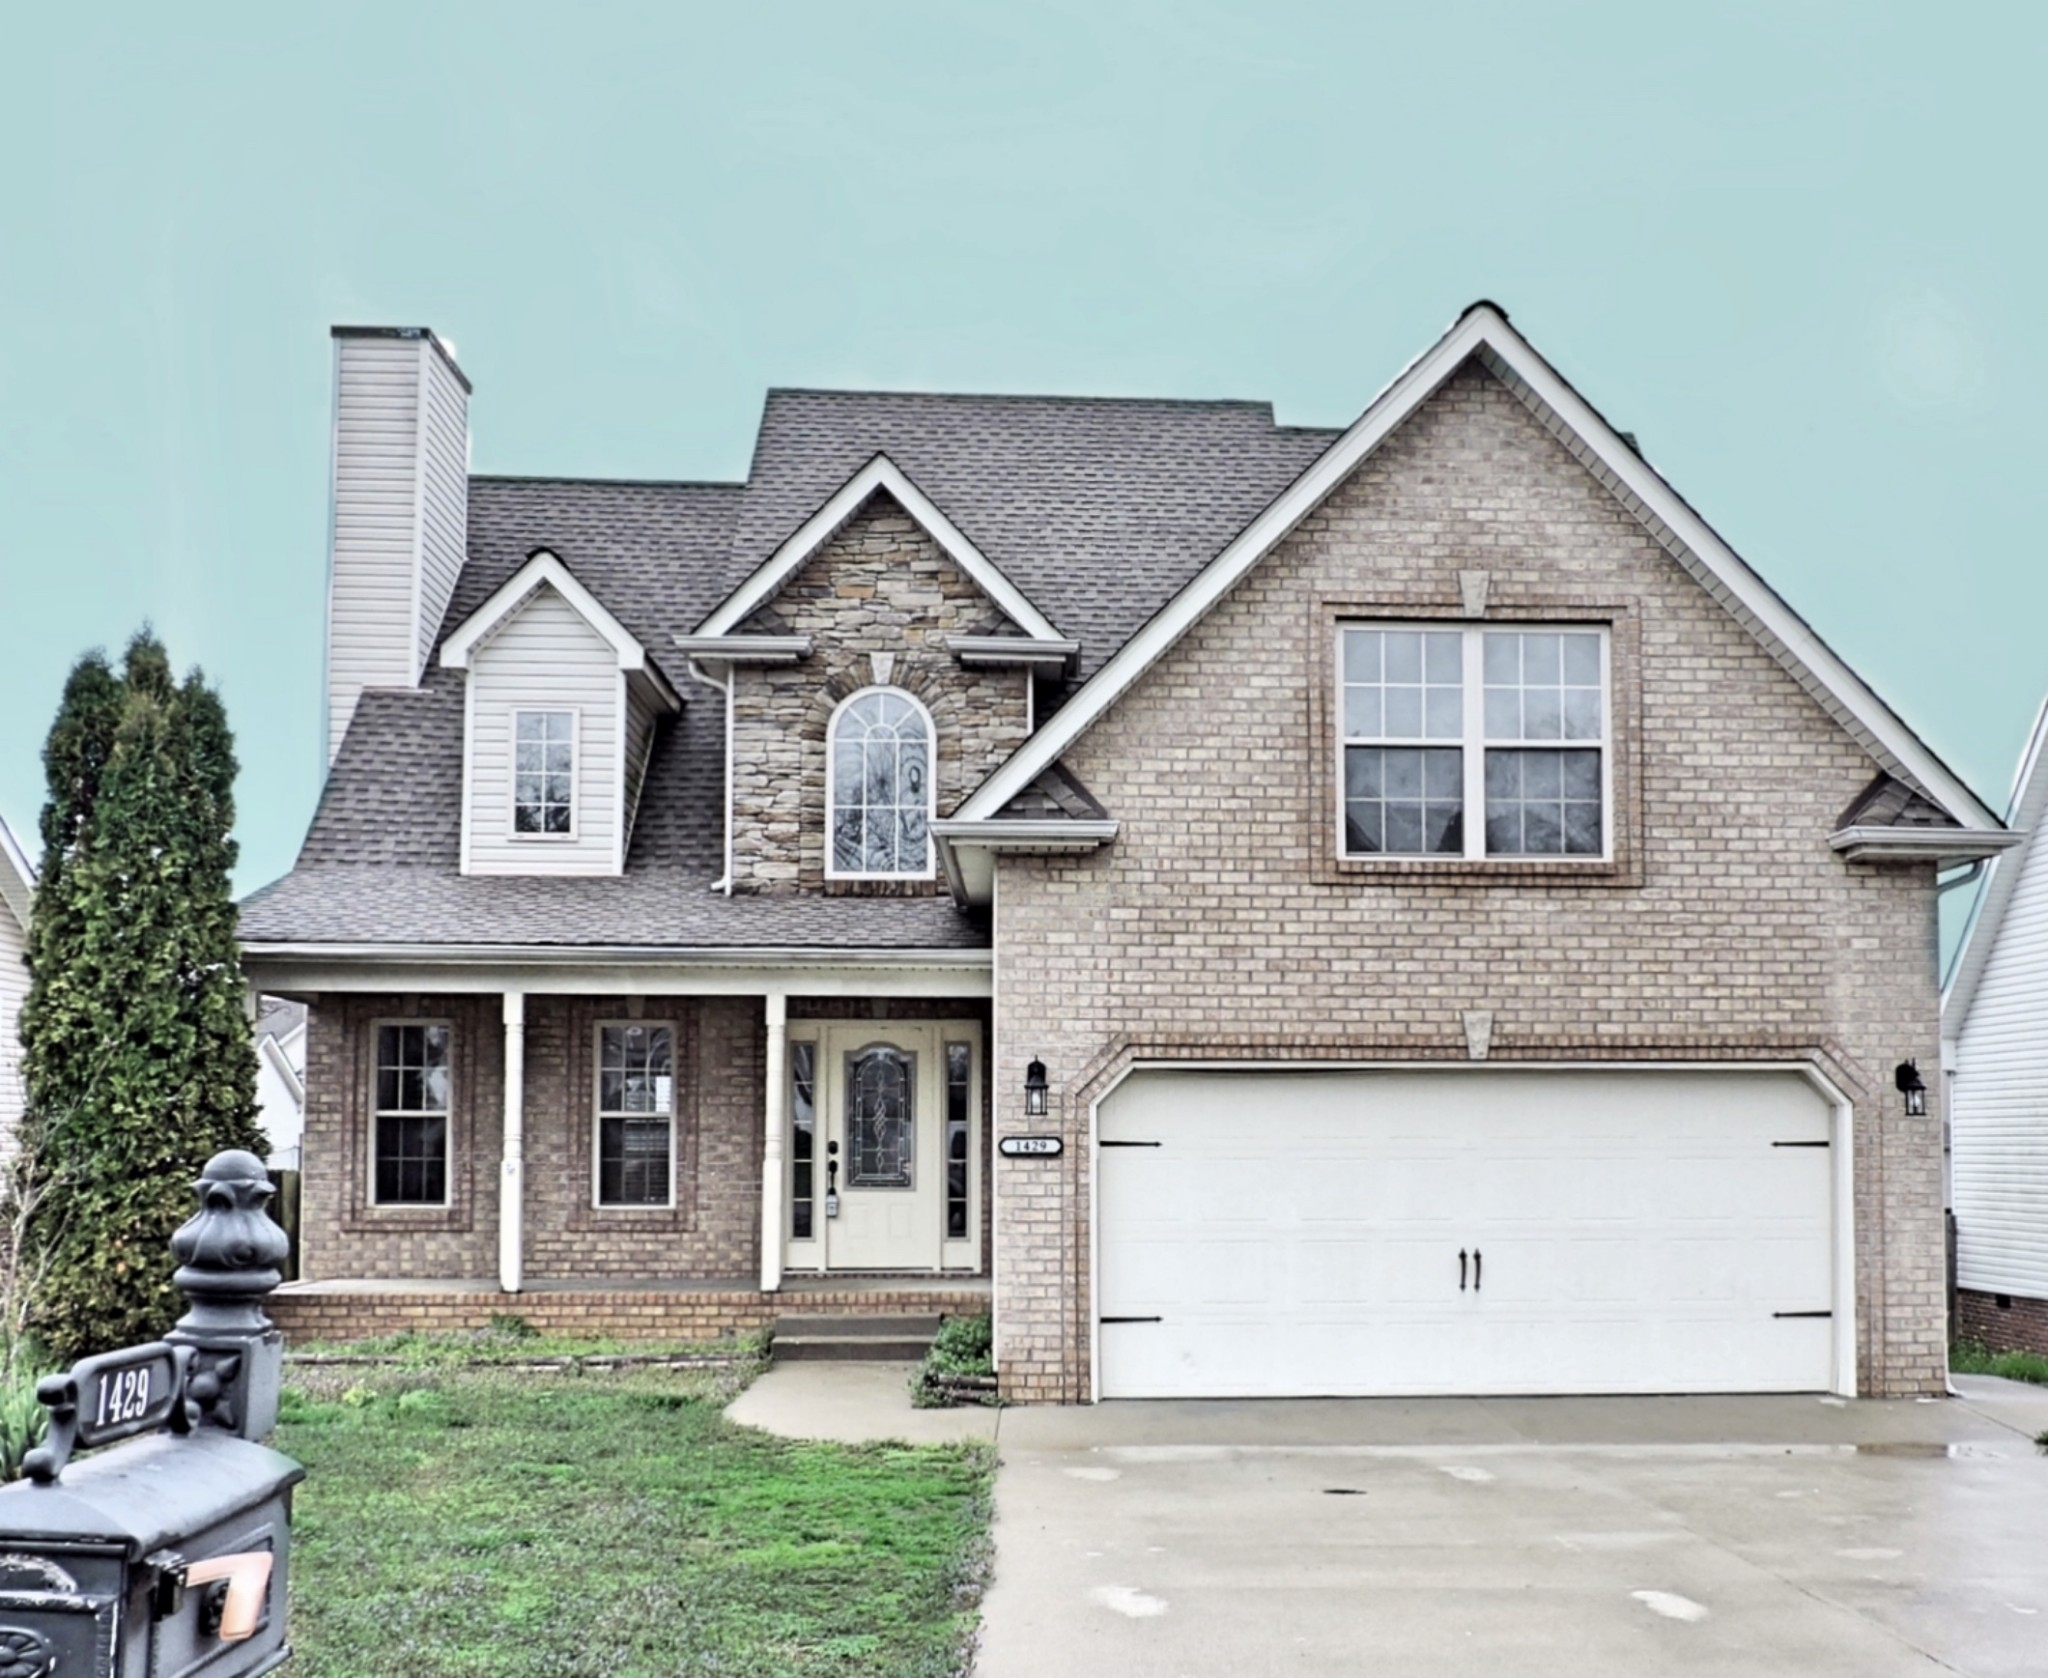 1429 Bruceton Dr, Clarksville, TN 37042 - Clarksville, TN real estate listing